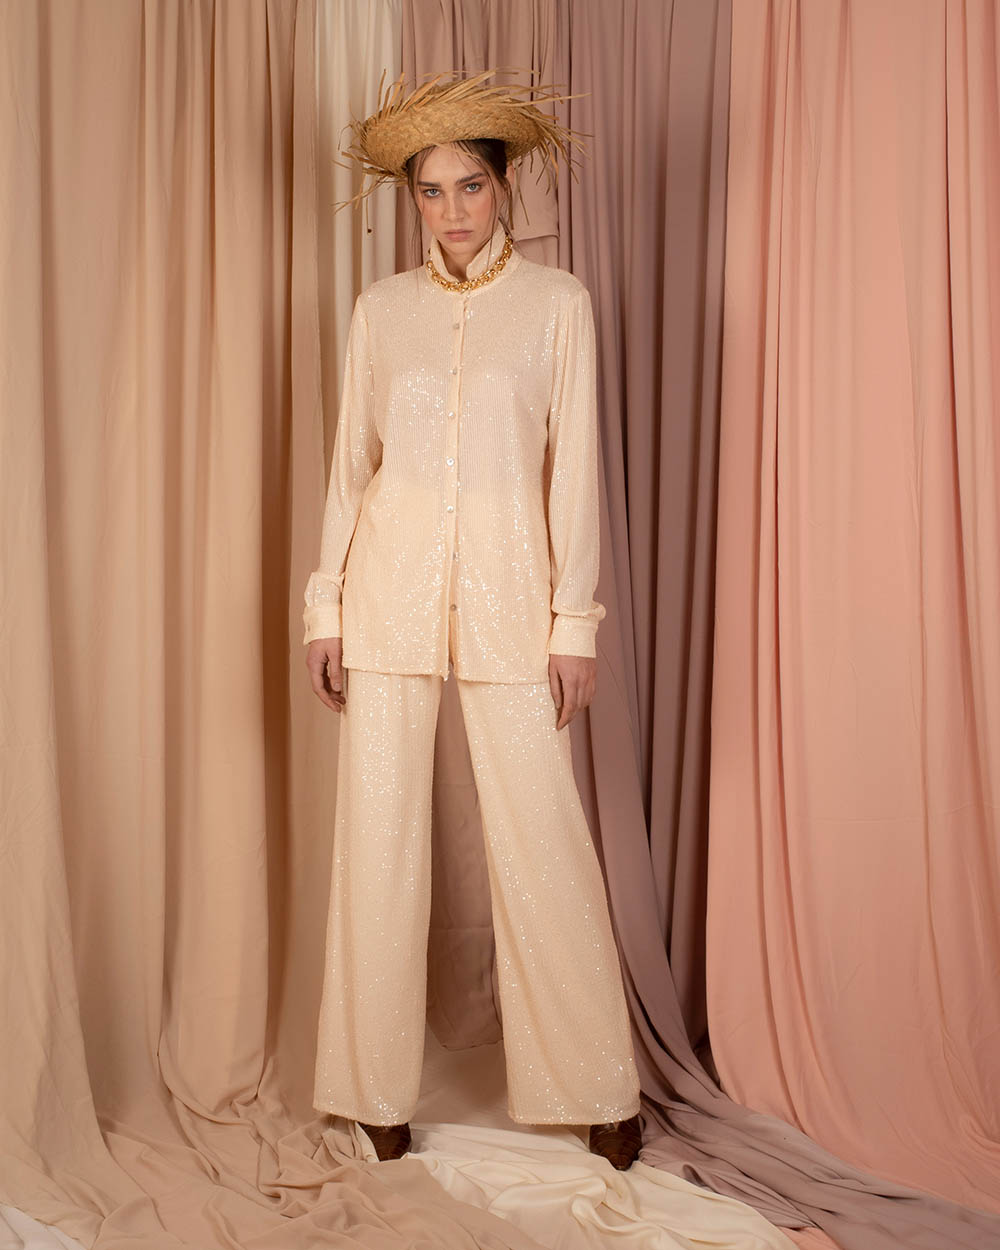 Dawn Pants - Beige by Jessica K on curated-crowd.com